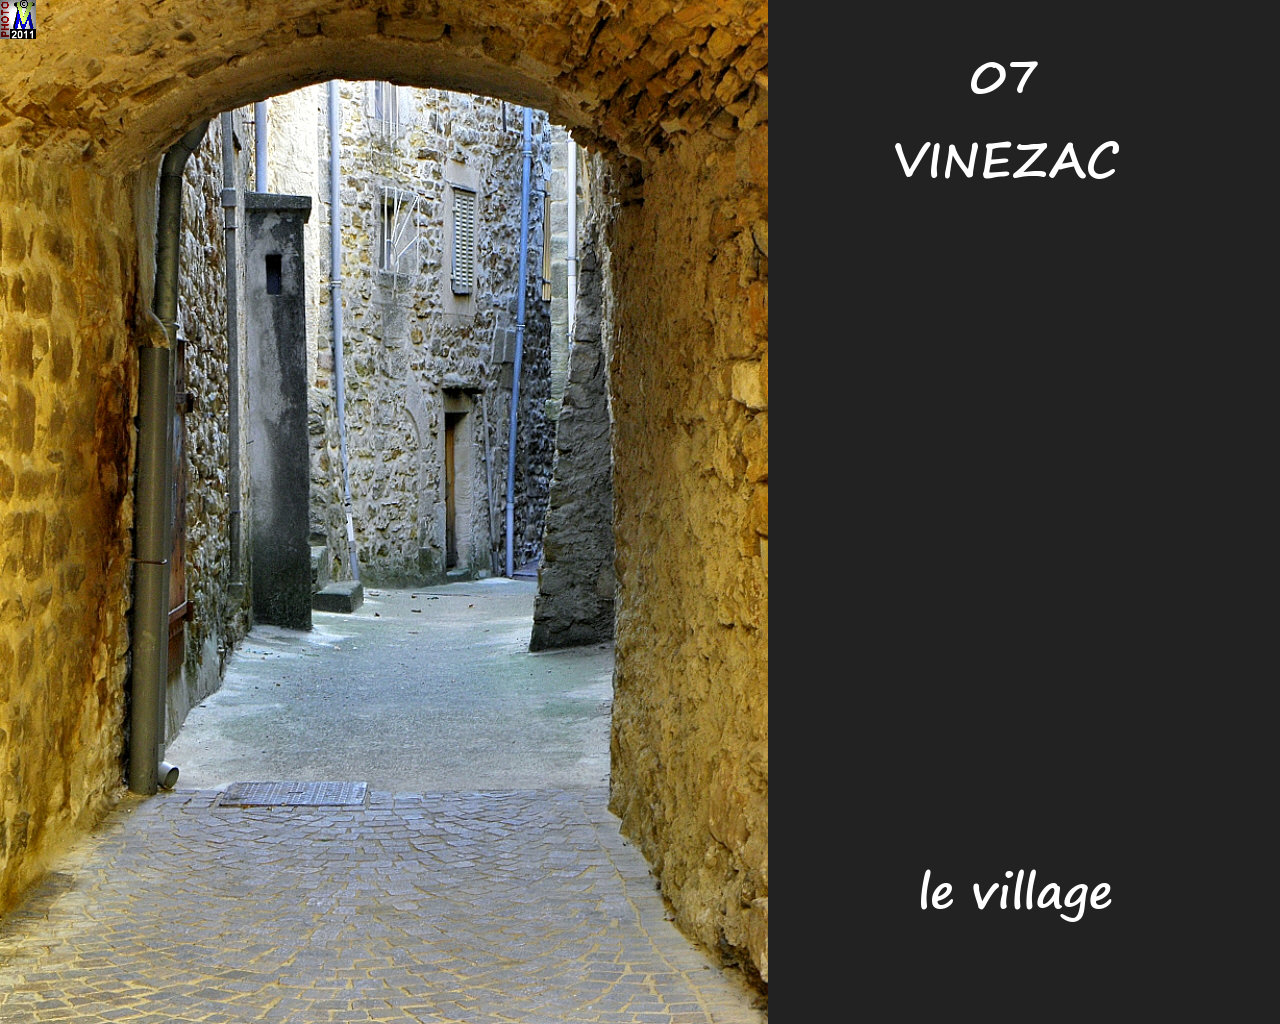 07VINEZAC_village_126.jpg